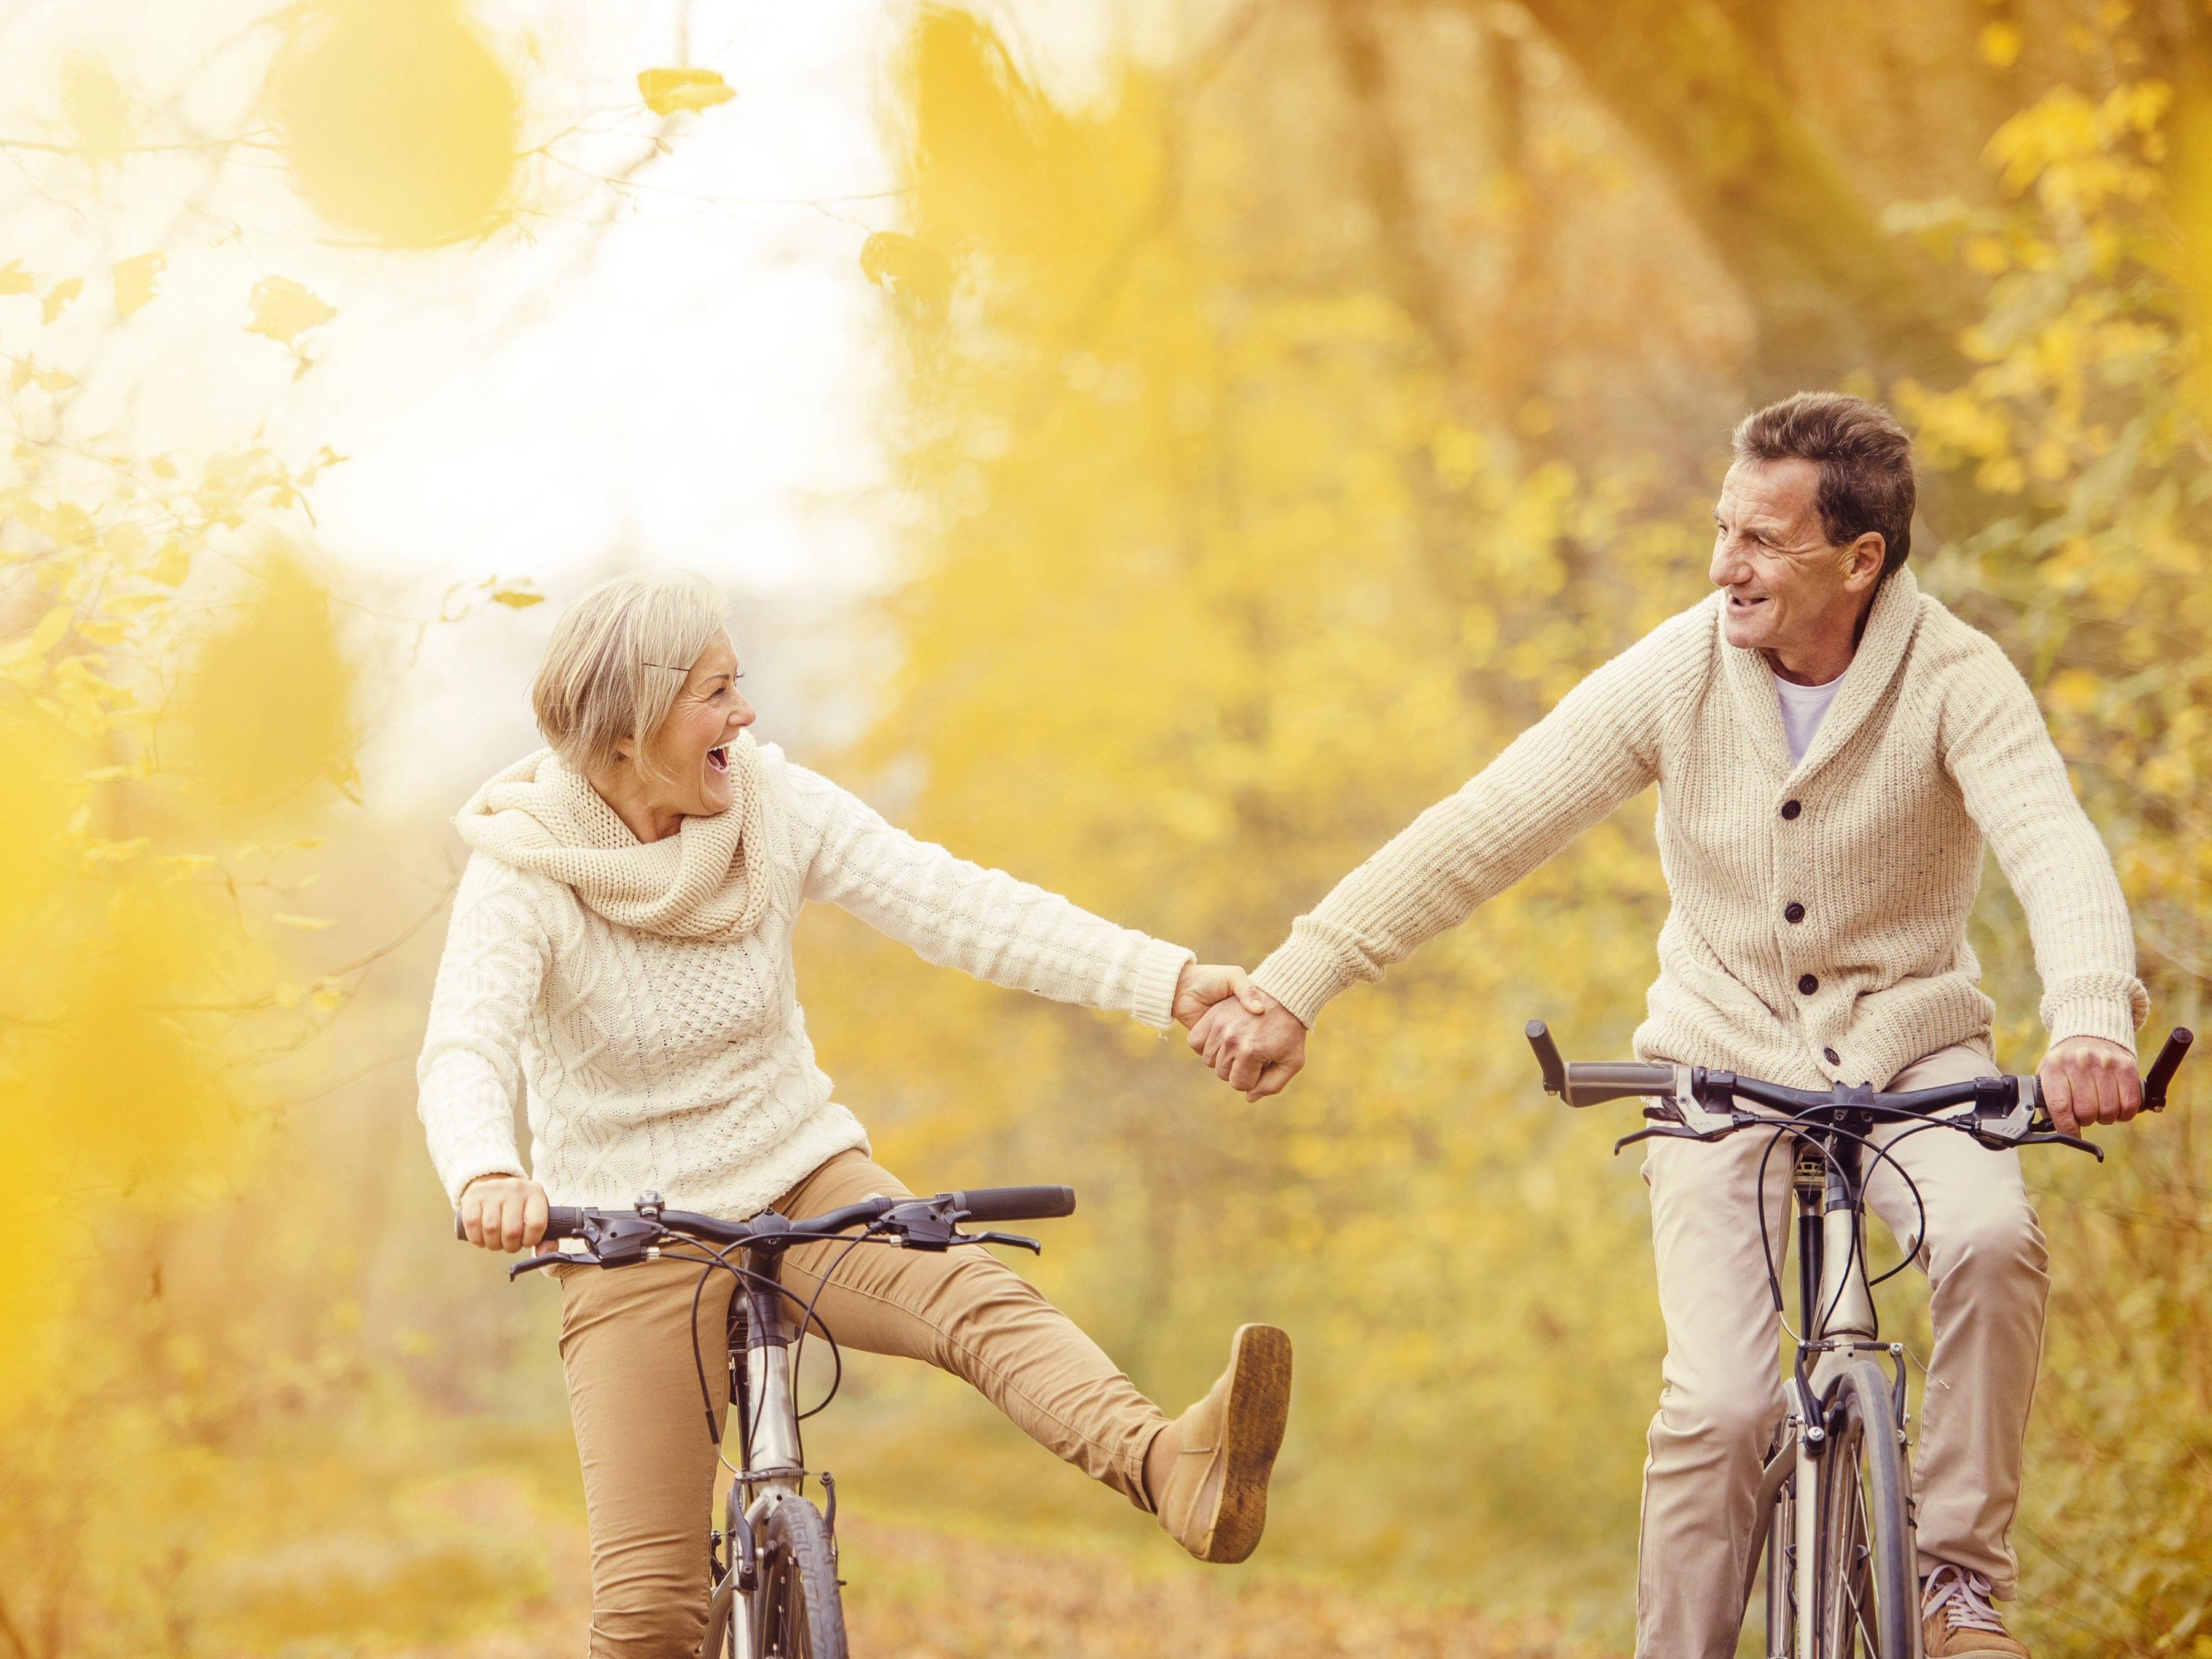 The science behind long-lasting relationships